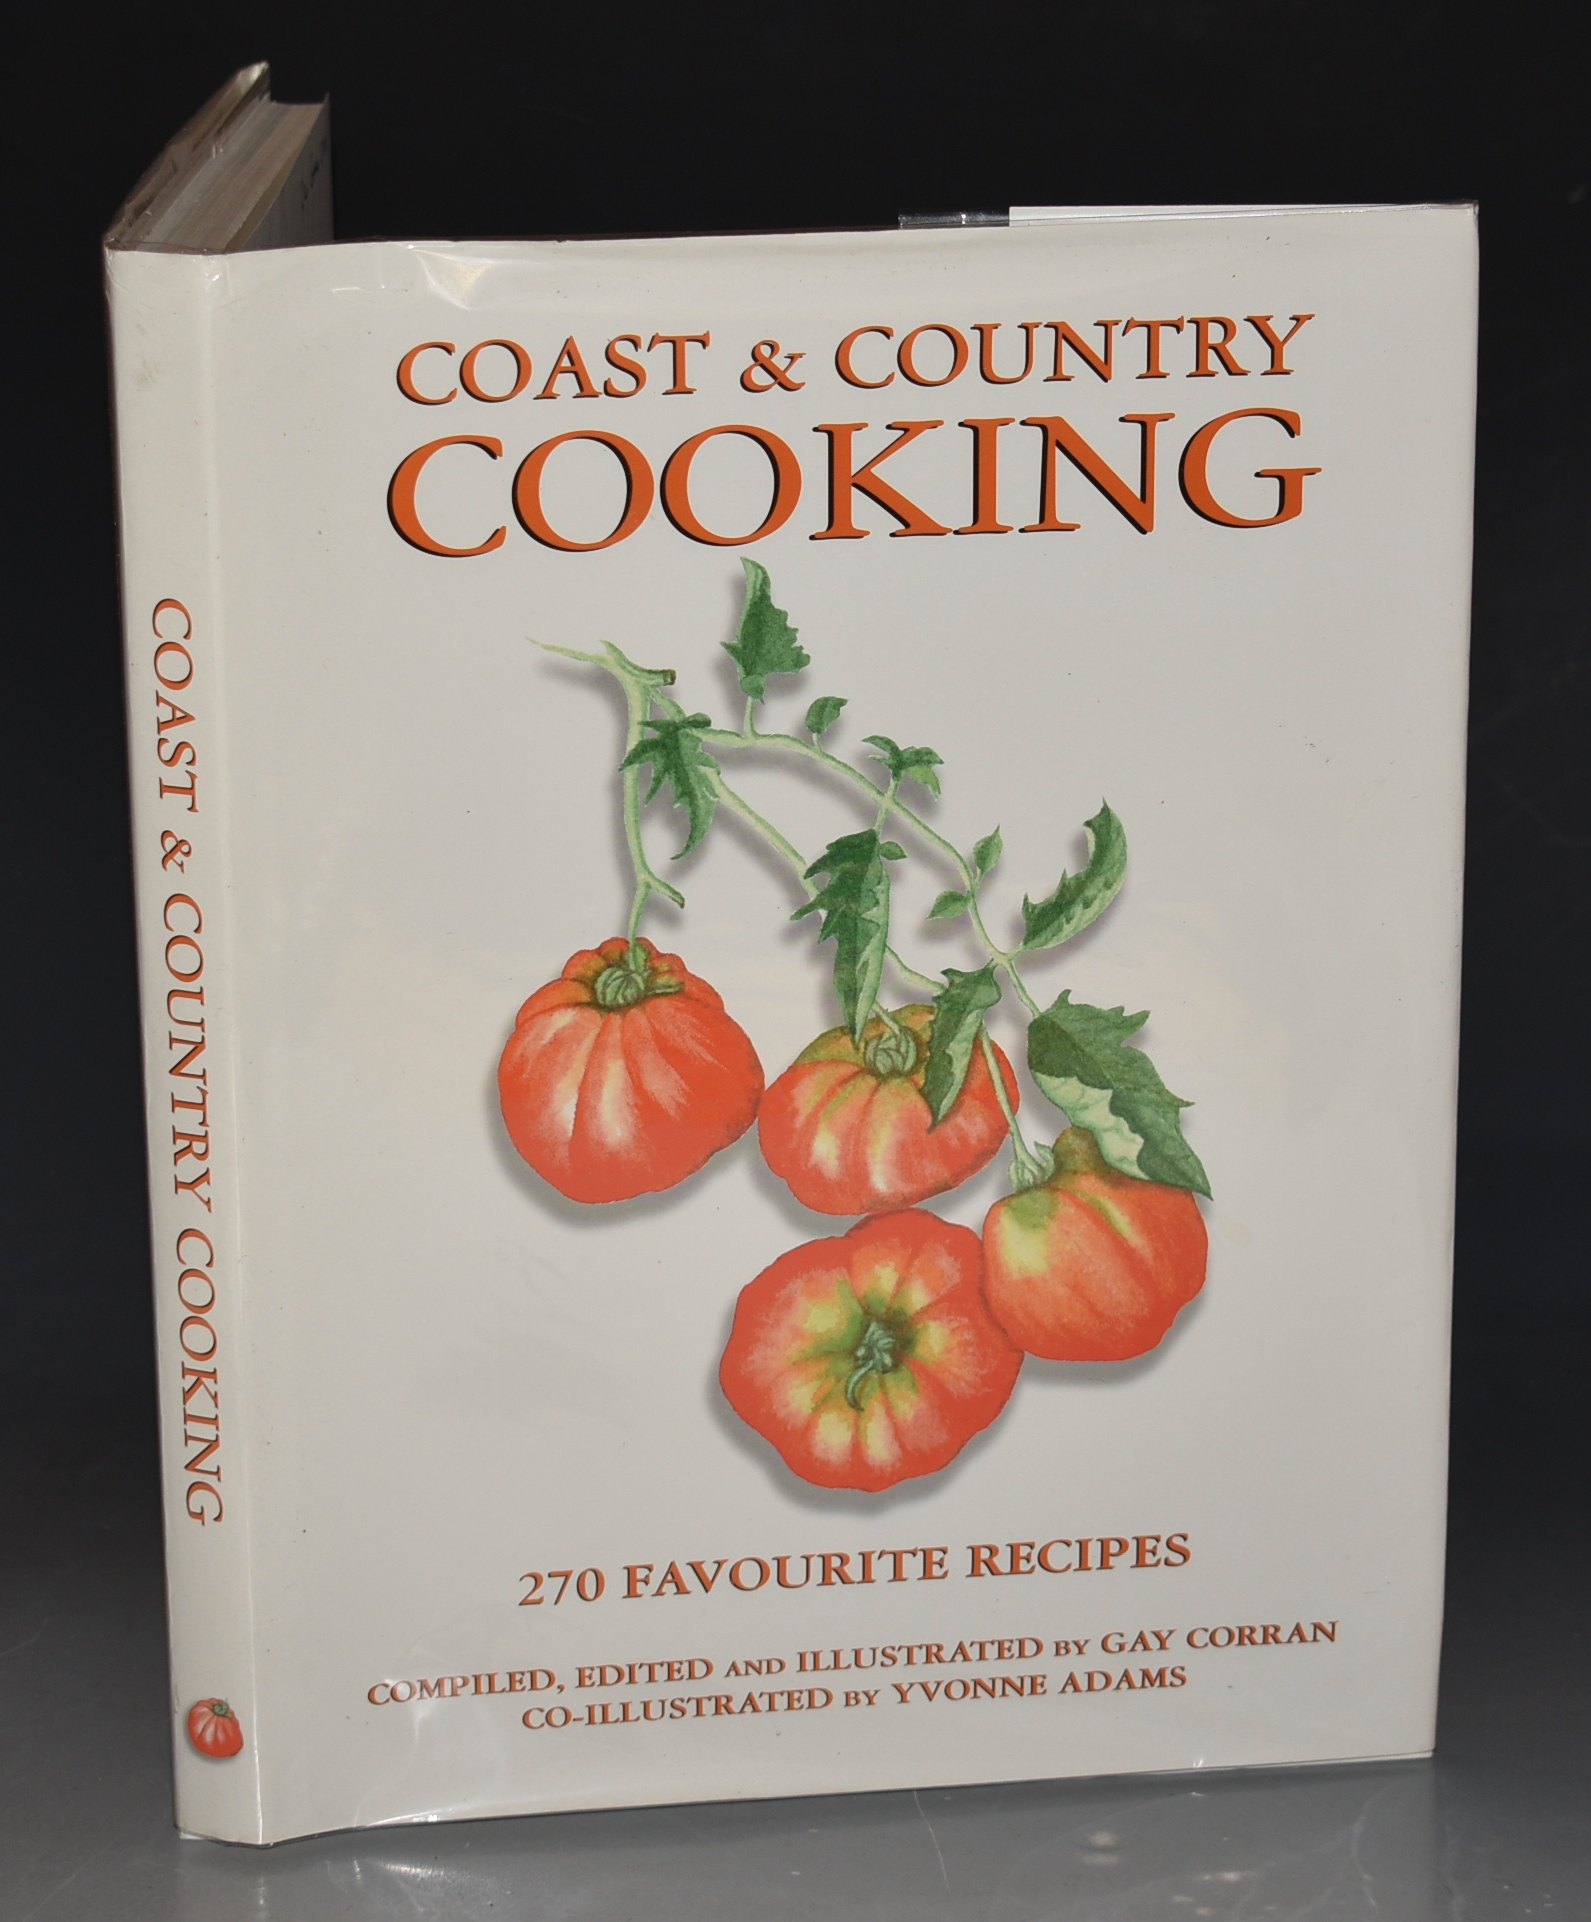 Image for Coast & Country Cooking 270 Favourite Recipes. Compiled, Edited and Illustrated by Gay Corran. Signed Copy.